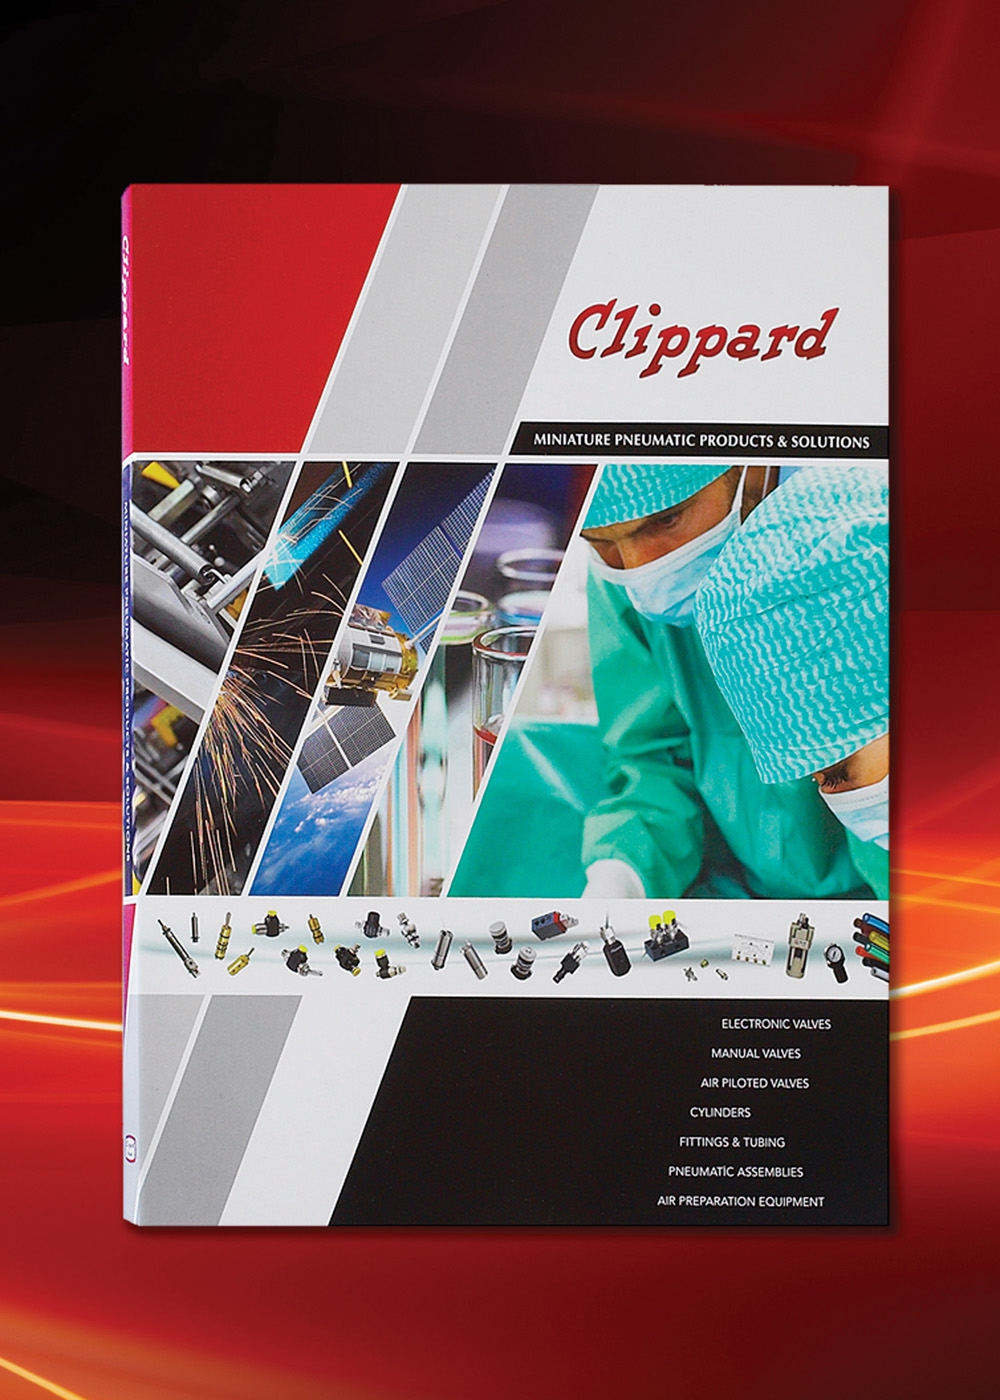 New Products Engineering : Clippard releases new pneumatic products solutions